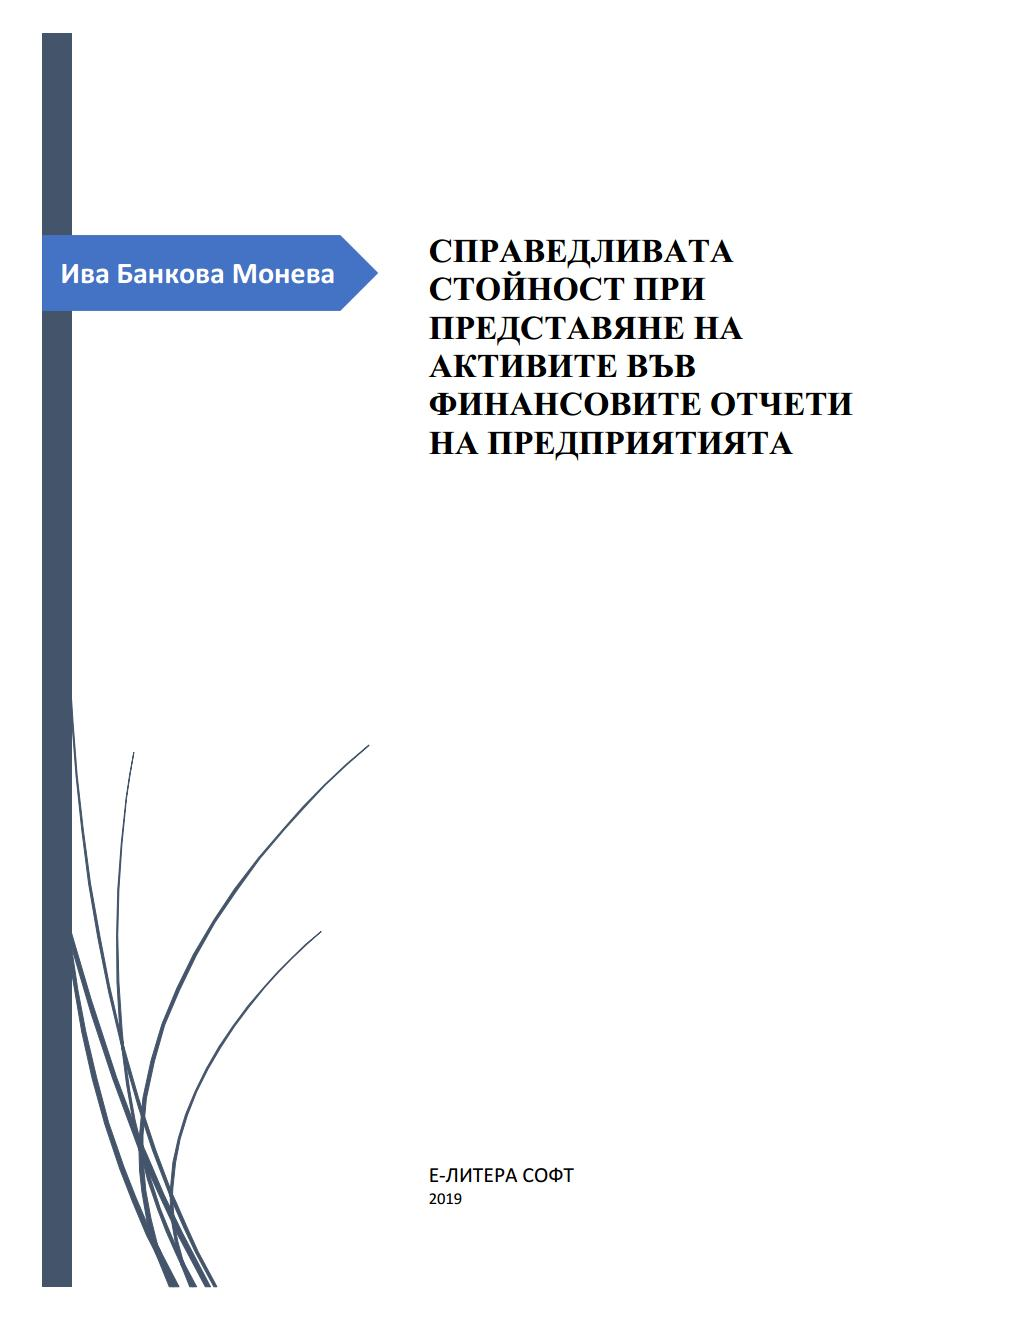 The fair value of the assets in the financial statements of the enterprises Cover Image